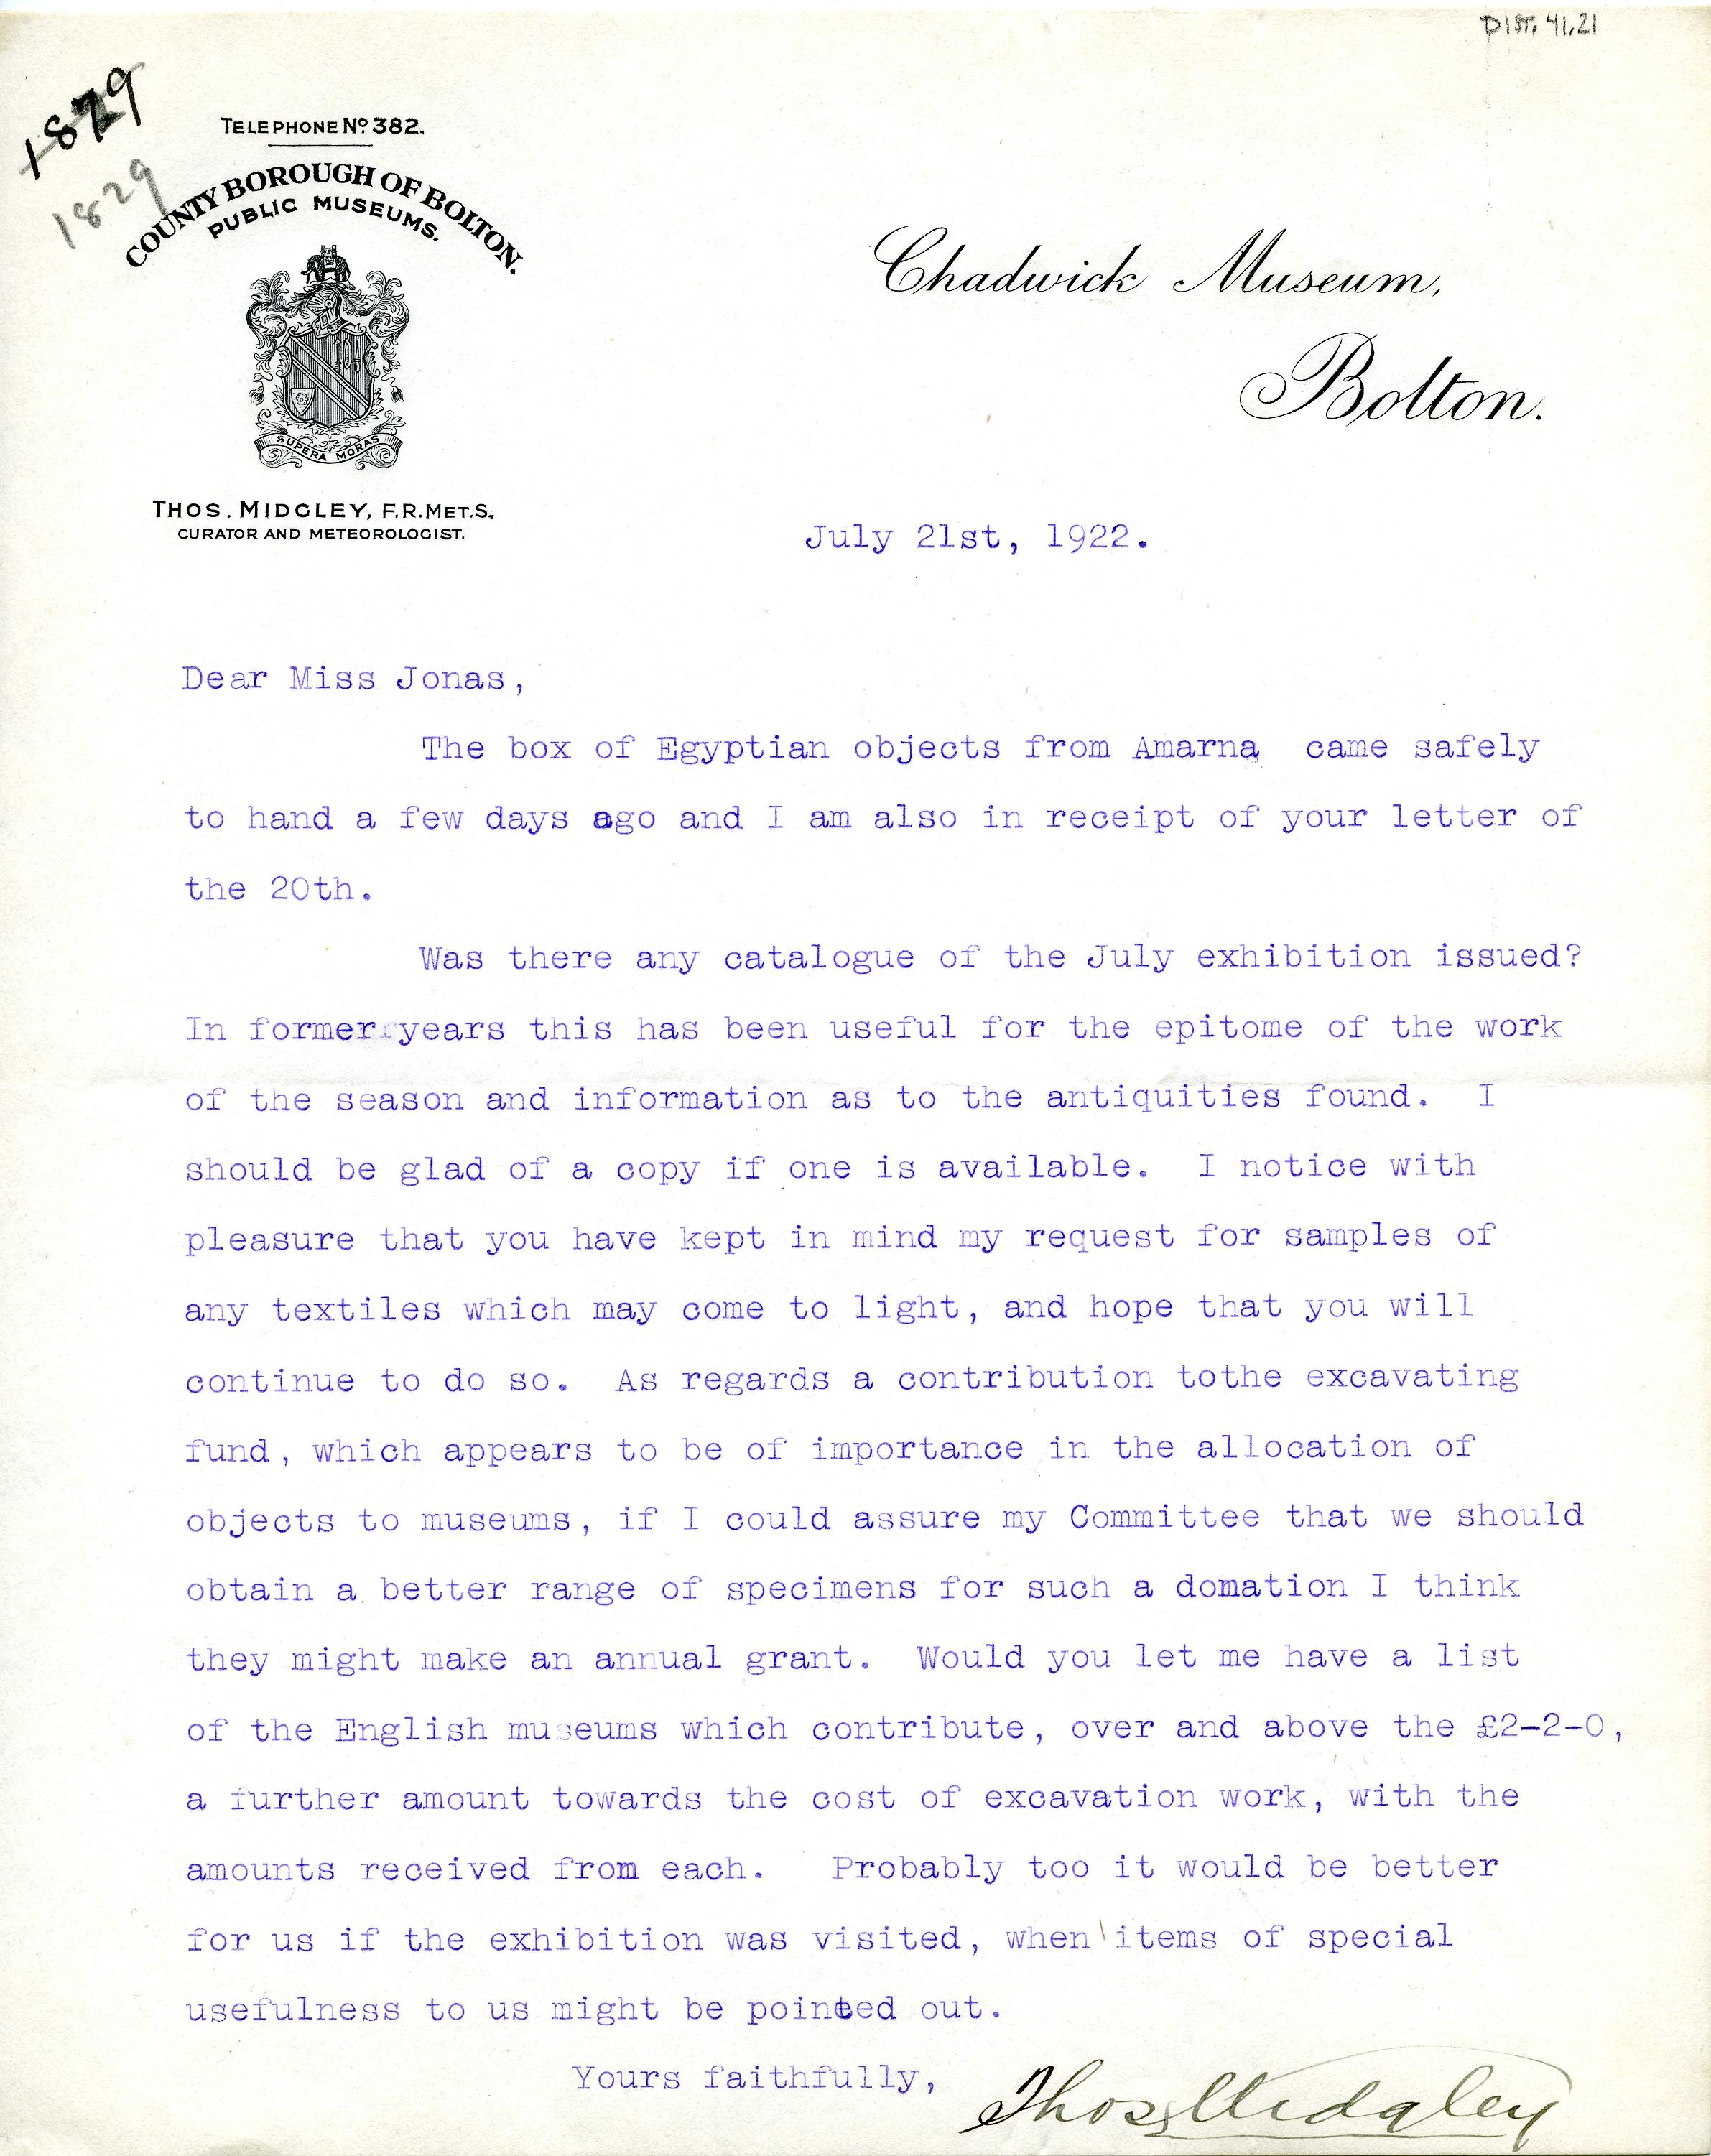 1922-76 Miscellaneous correspondence with museums DIST.41.21